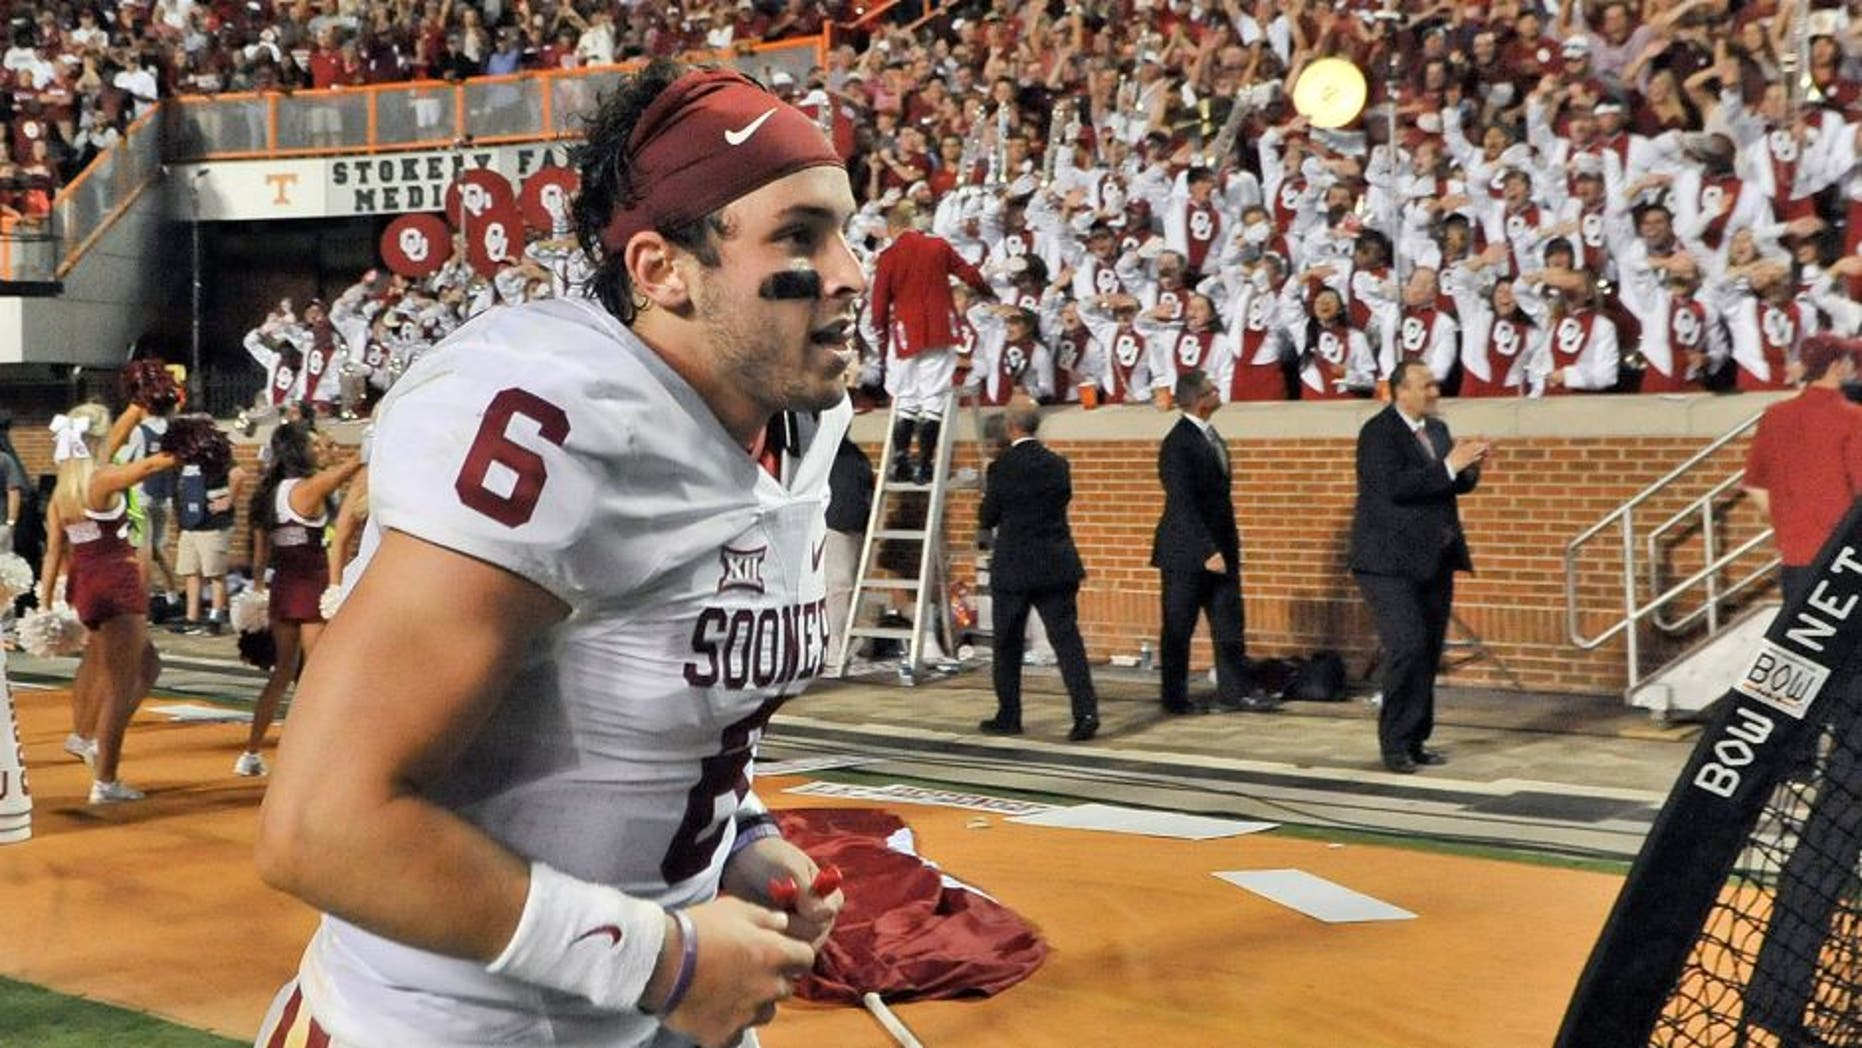 Sep 12, 2015; Knoxville, TN, USA; Oklahoma Sooners quarterback Baker Mayfield (6) runs off the field after defeating the Tennessee Volunteers in double overtime Neyland Stadium. Oklahoma won 31-24. Mandatory Credit: Jim Brown-USA TODAY Sports